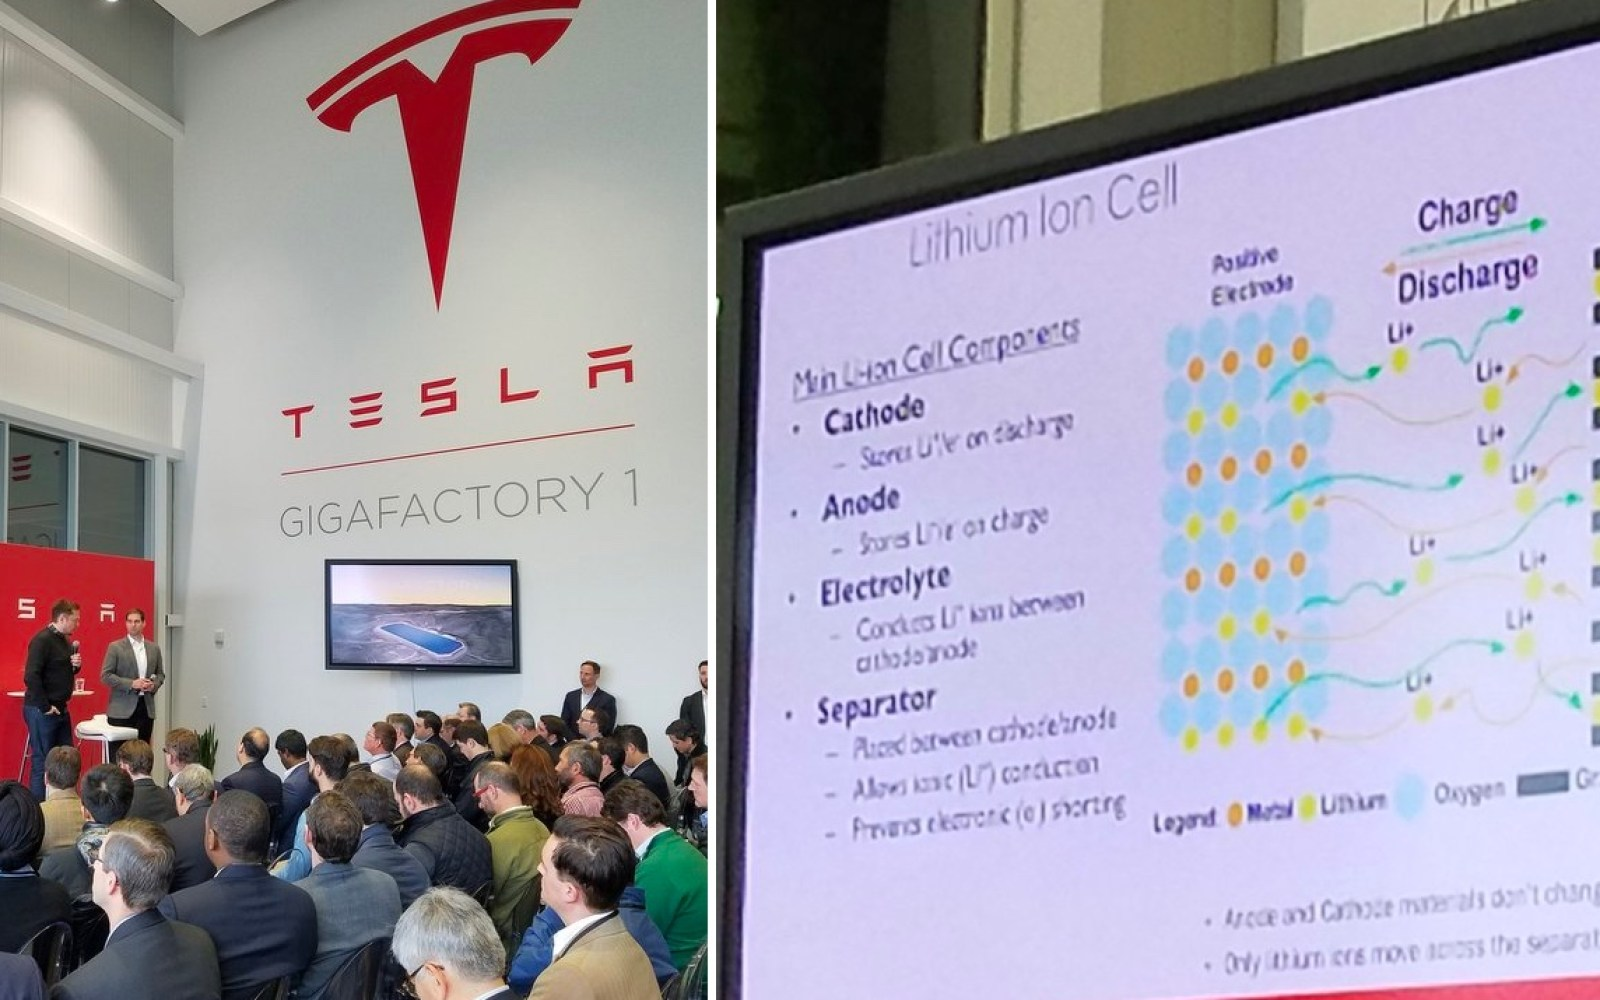 Tesla's battery cell presentation at the Gigafactory: 'the output of this thing is going to be insane' [audio of Q&A]